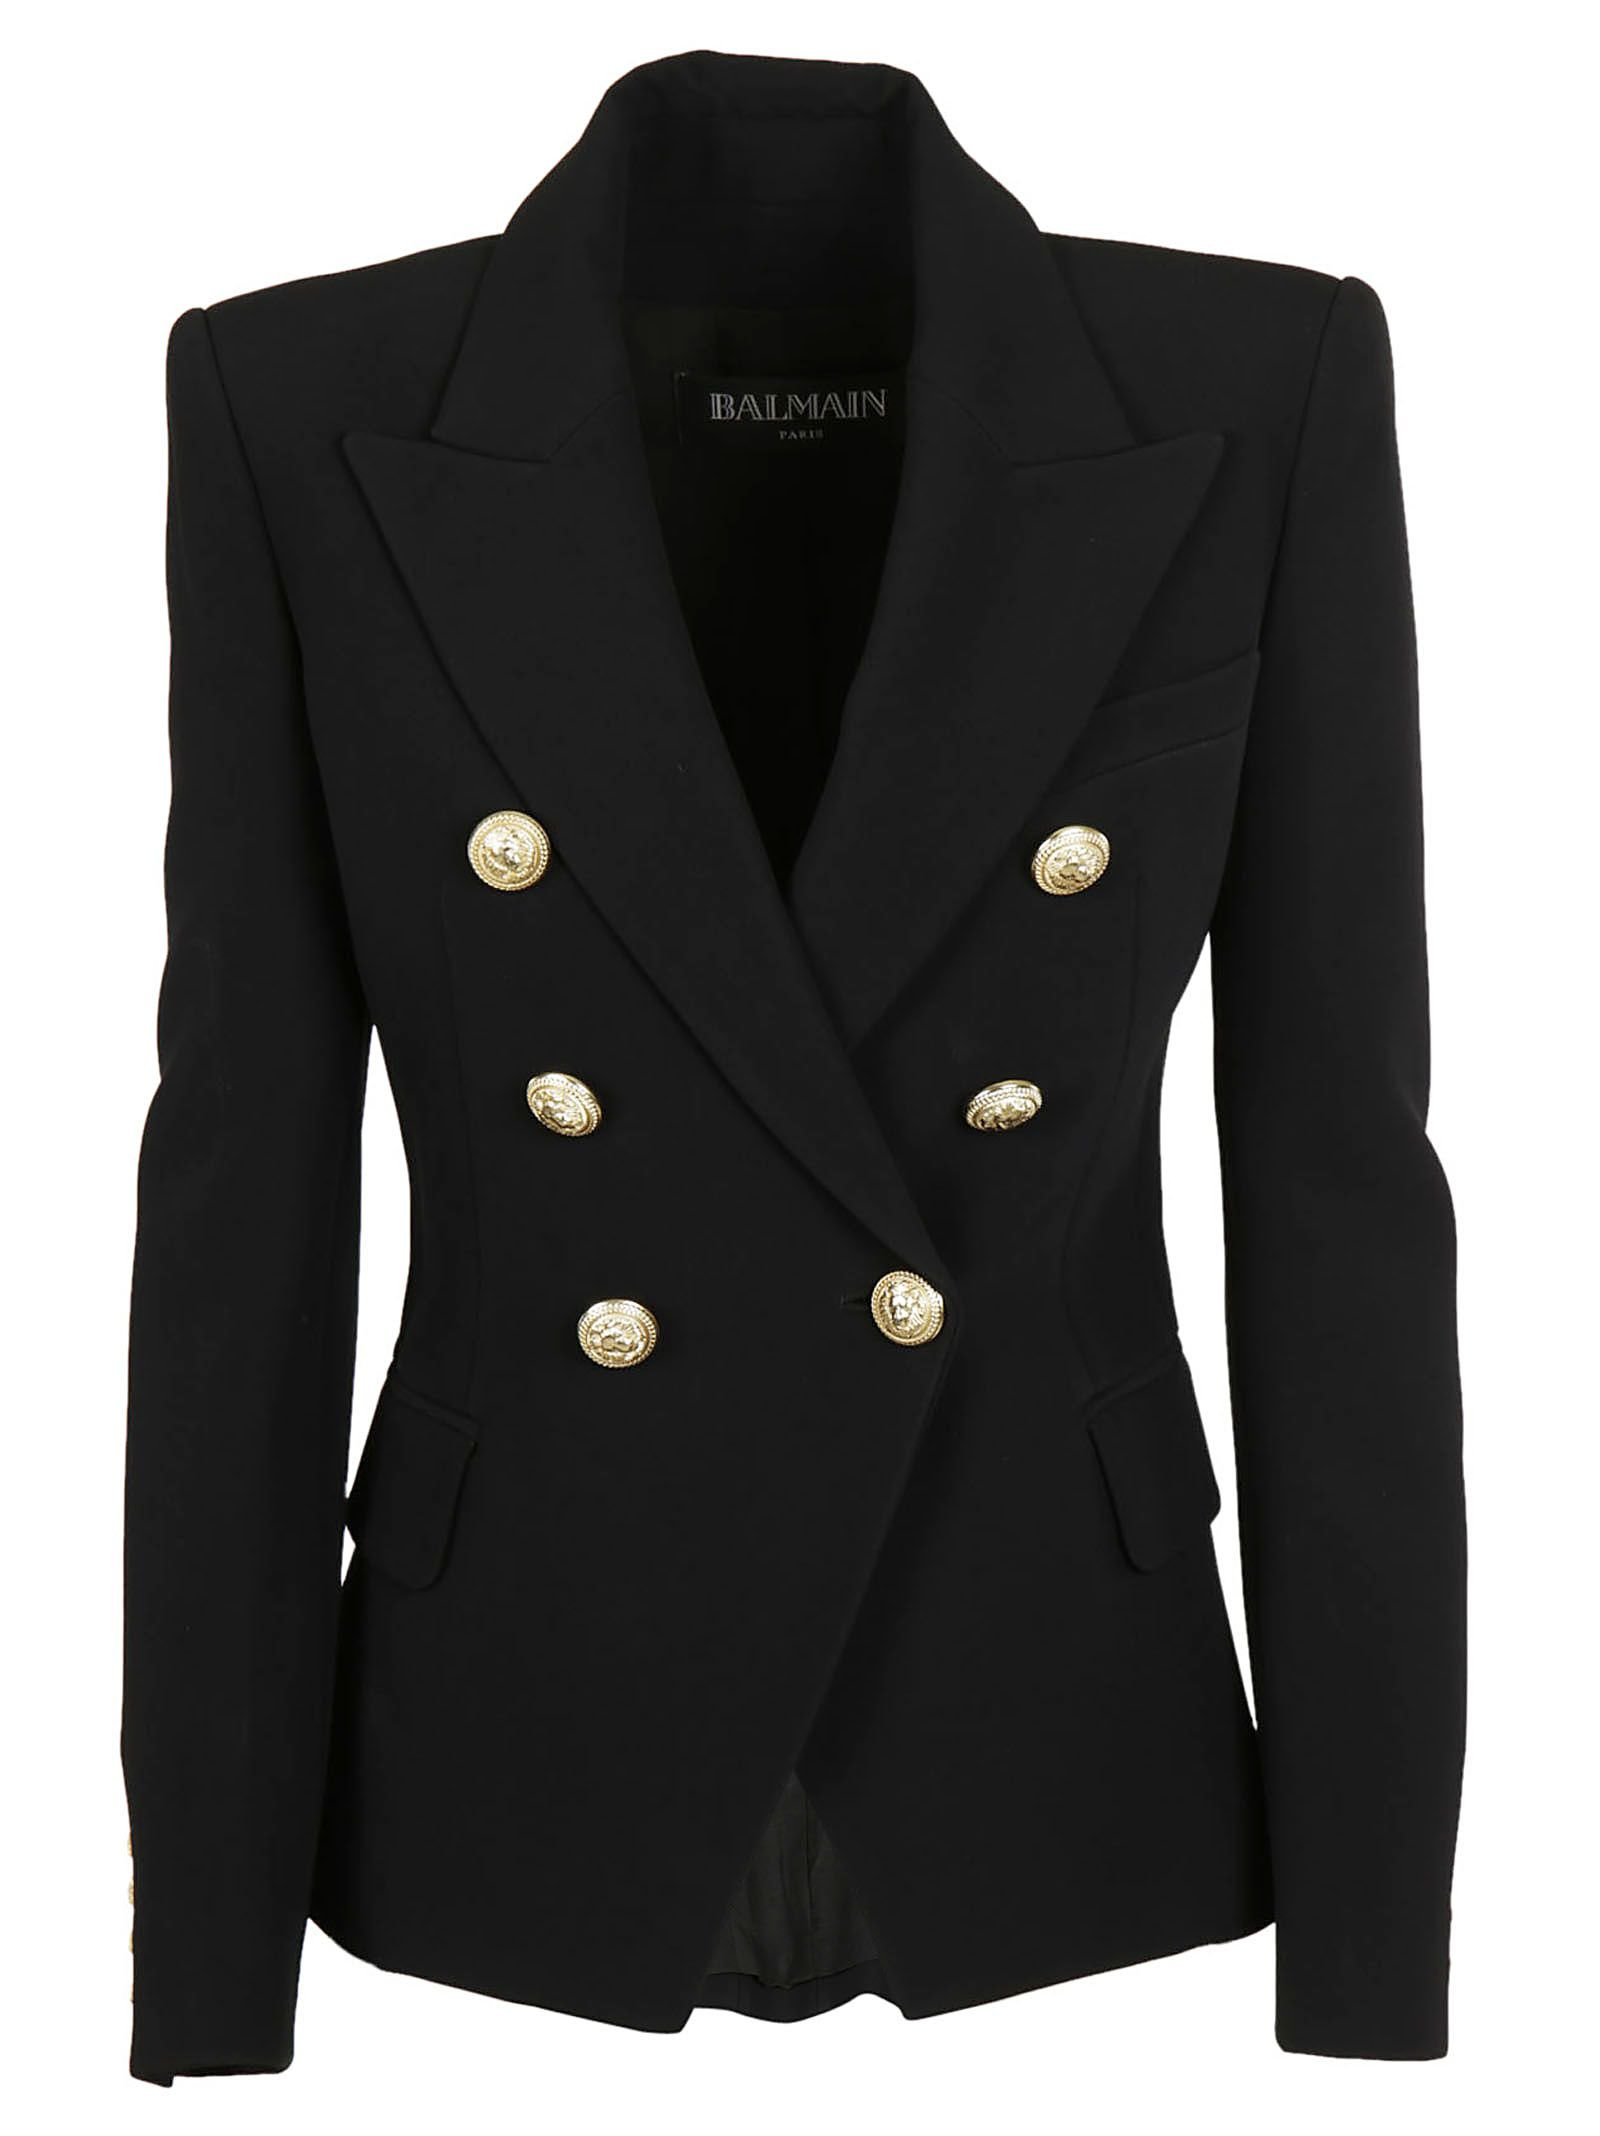 Balmain Gown | Balmain Double Breasted Blazer | Balmain Sizing